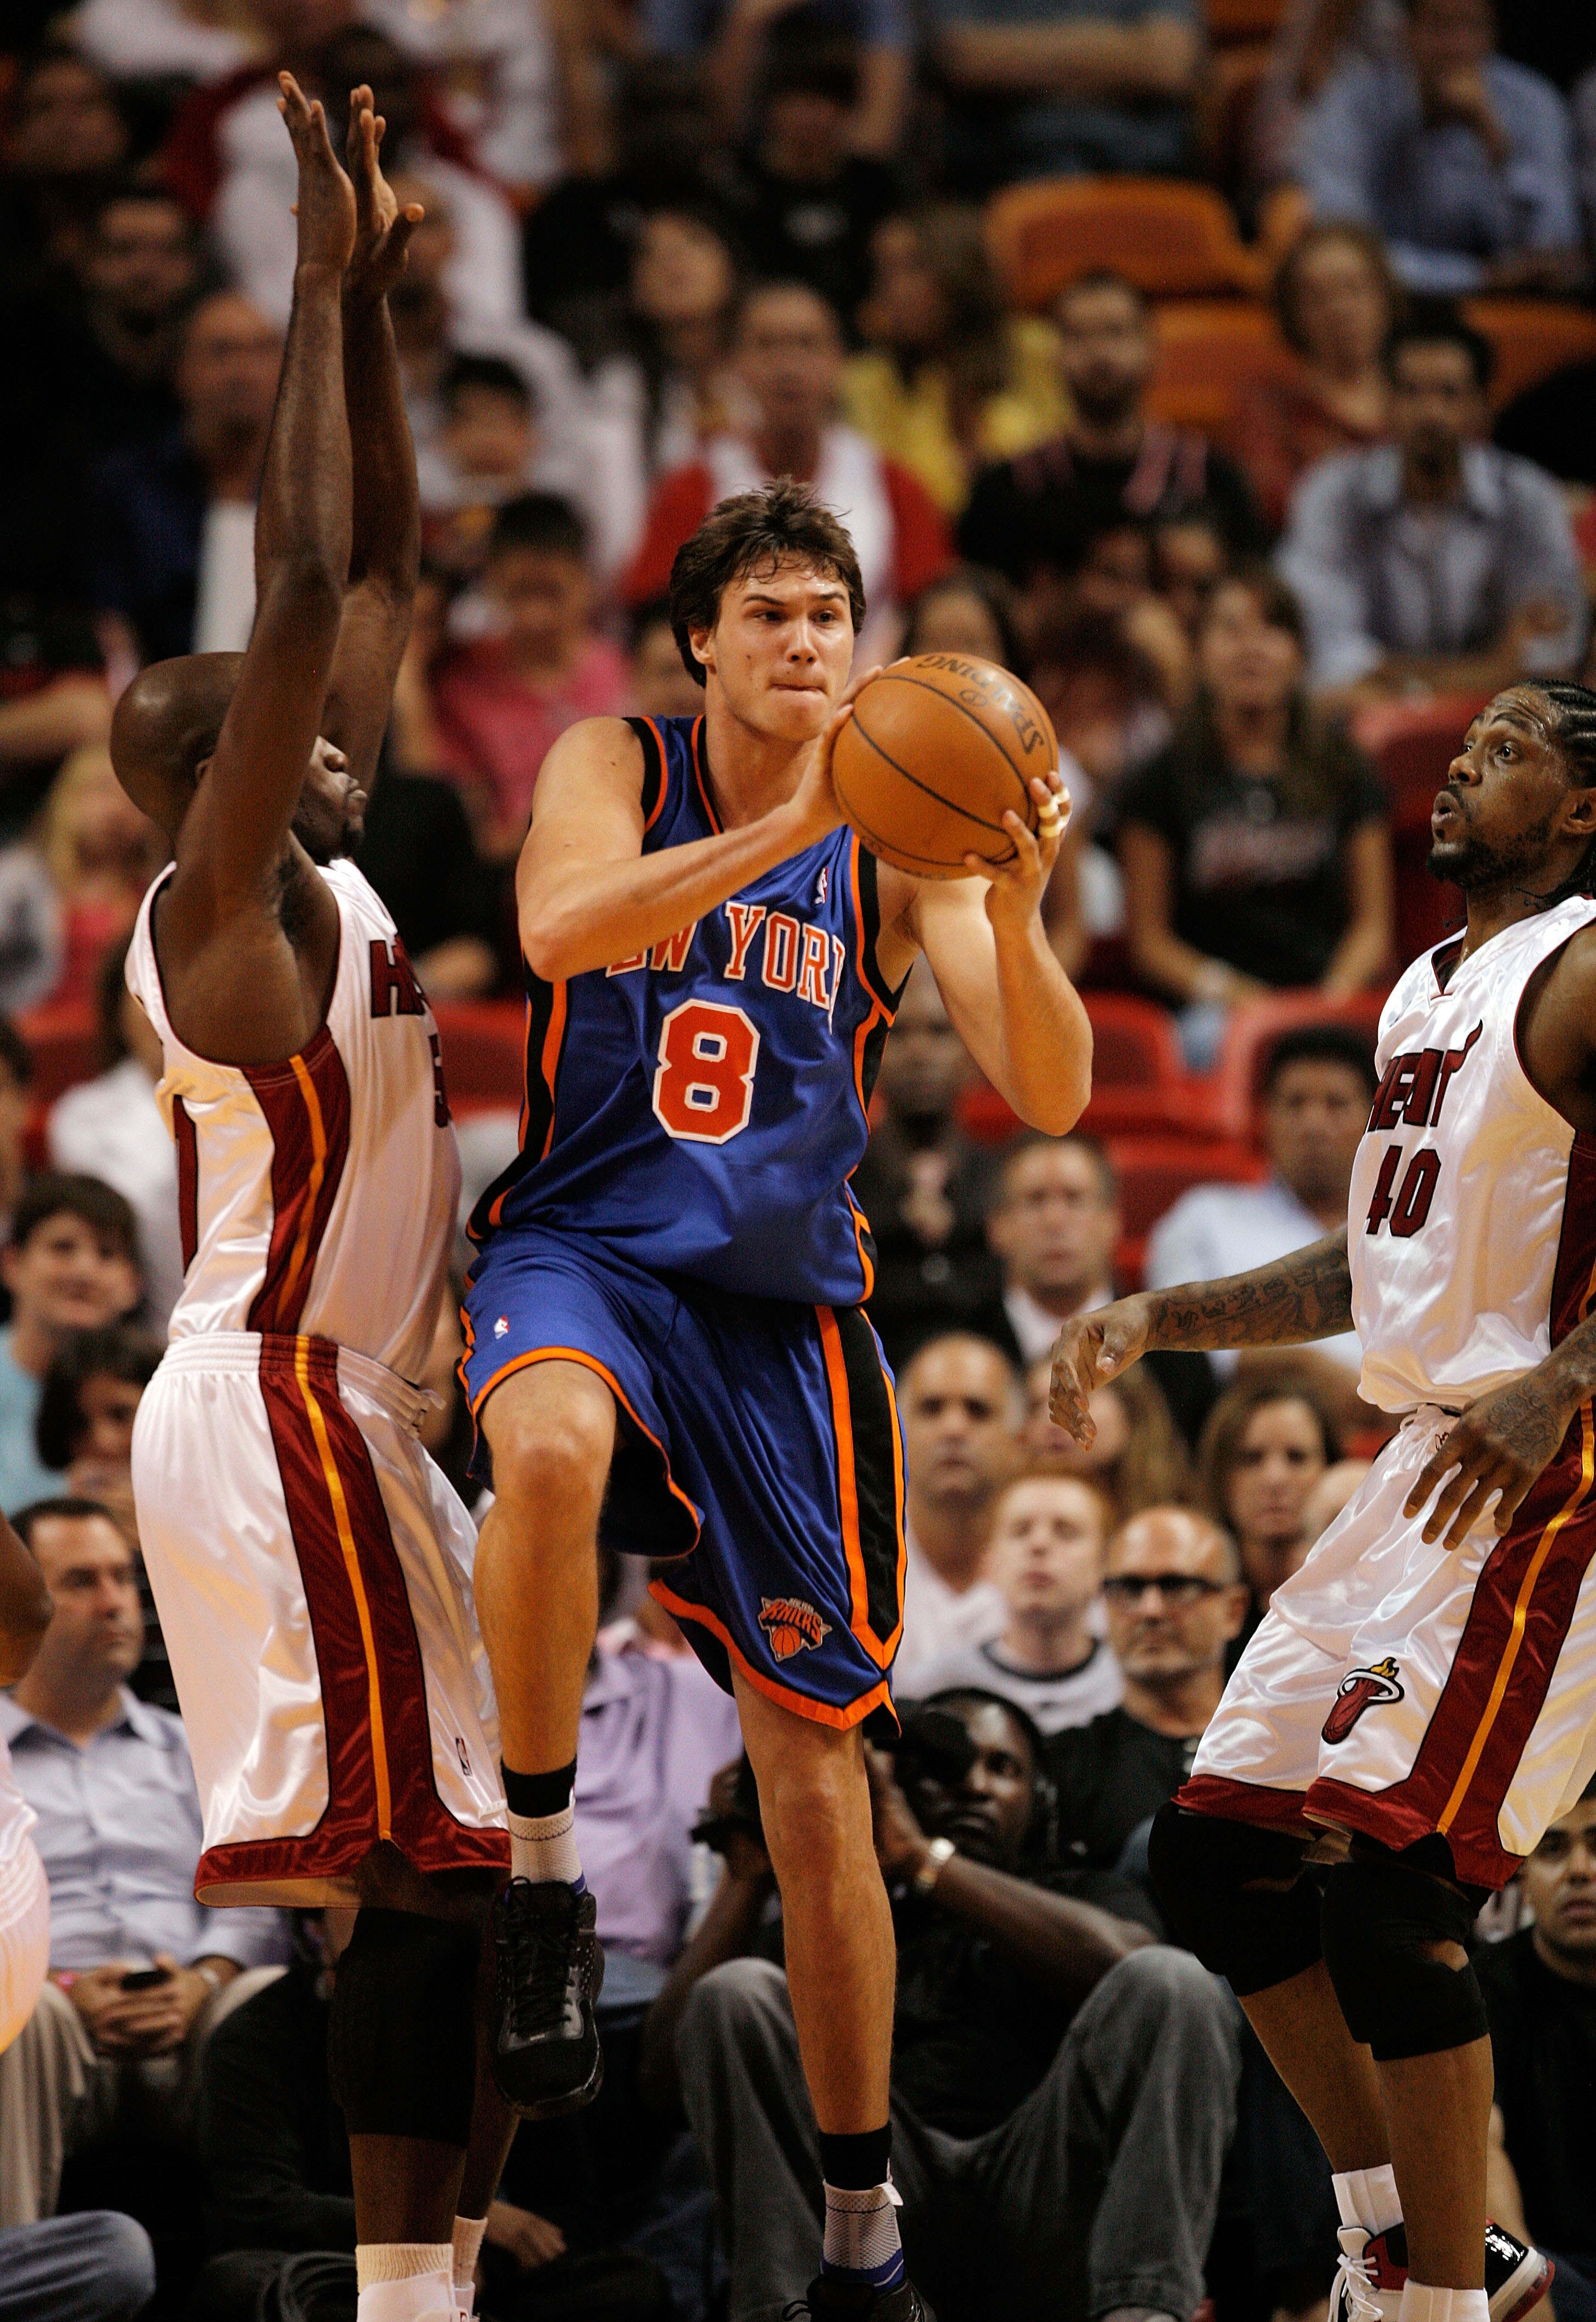 MIAMI - OCTOBER 28:  Danilo Gallinari #8 of the New York Knicks passes away from the pressure of Joel Anthony #50 and Udonis Haslem #40 of the Miami Heat at AmericanAirlines Arena on October 28, 2009 in Miami, Florida. The Heat defeated the Knicks 115-93.